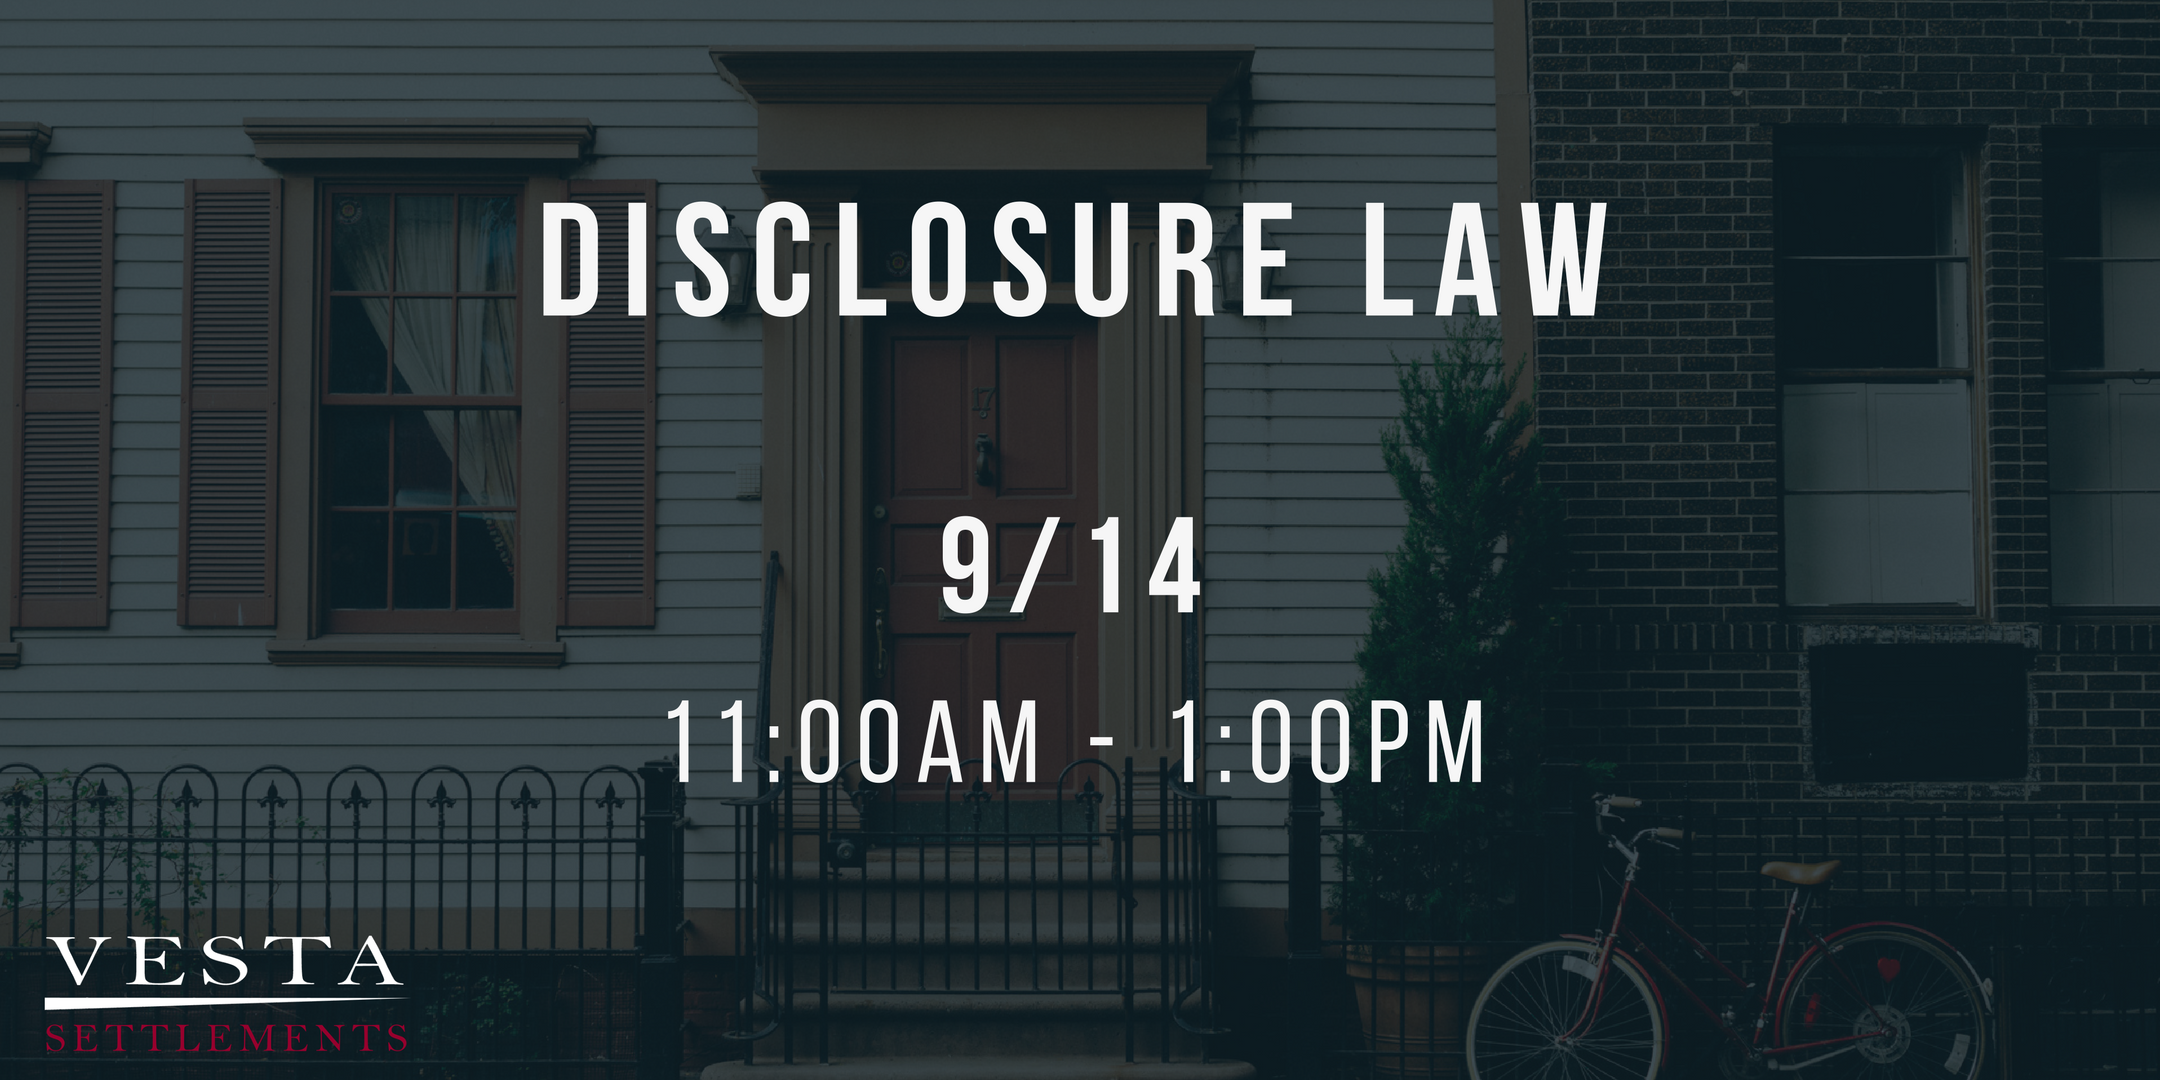 Disclosure Law photo